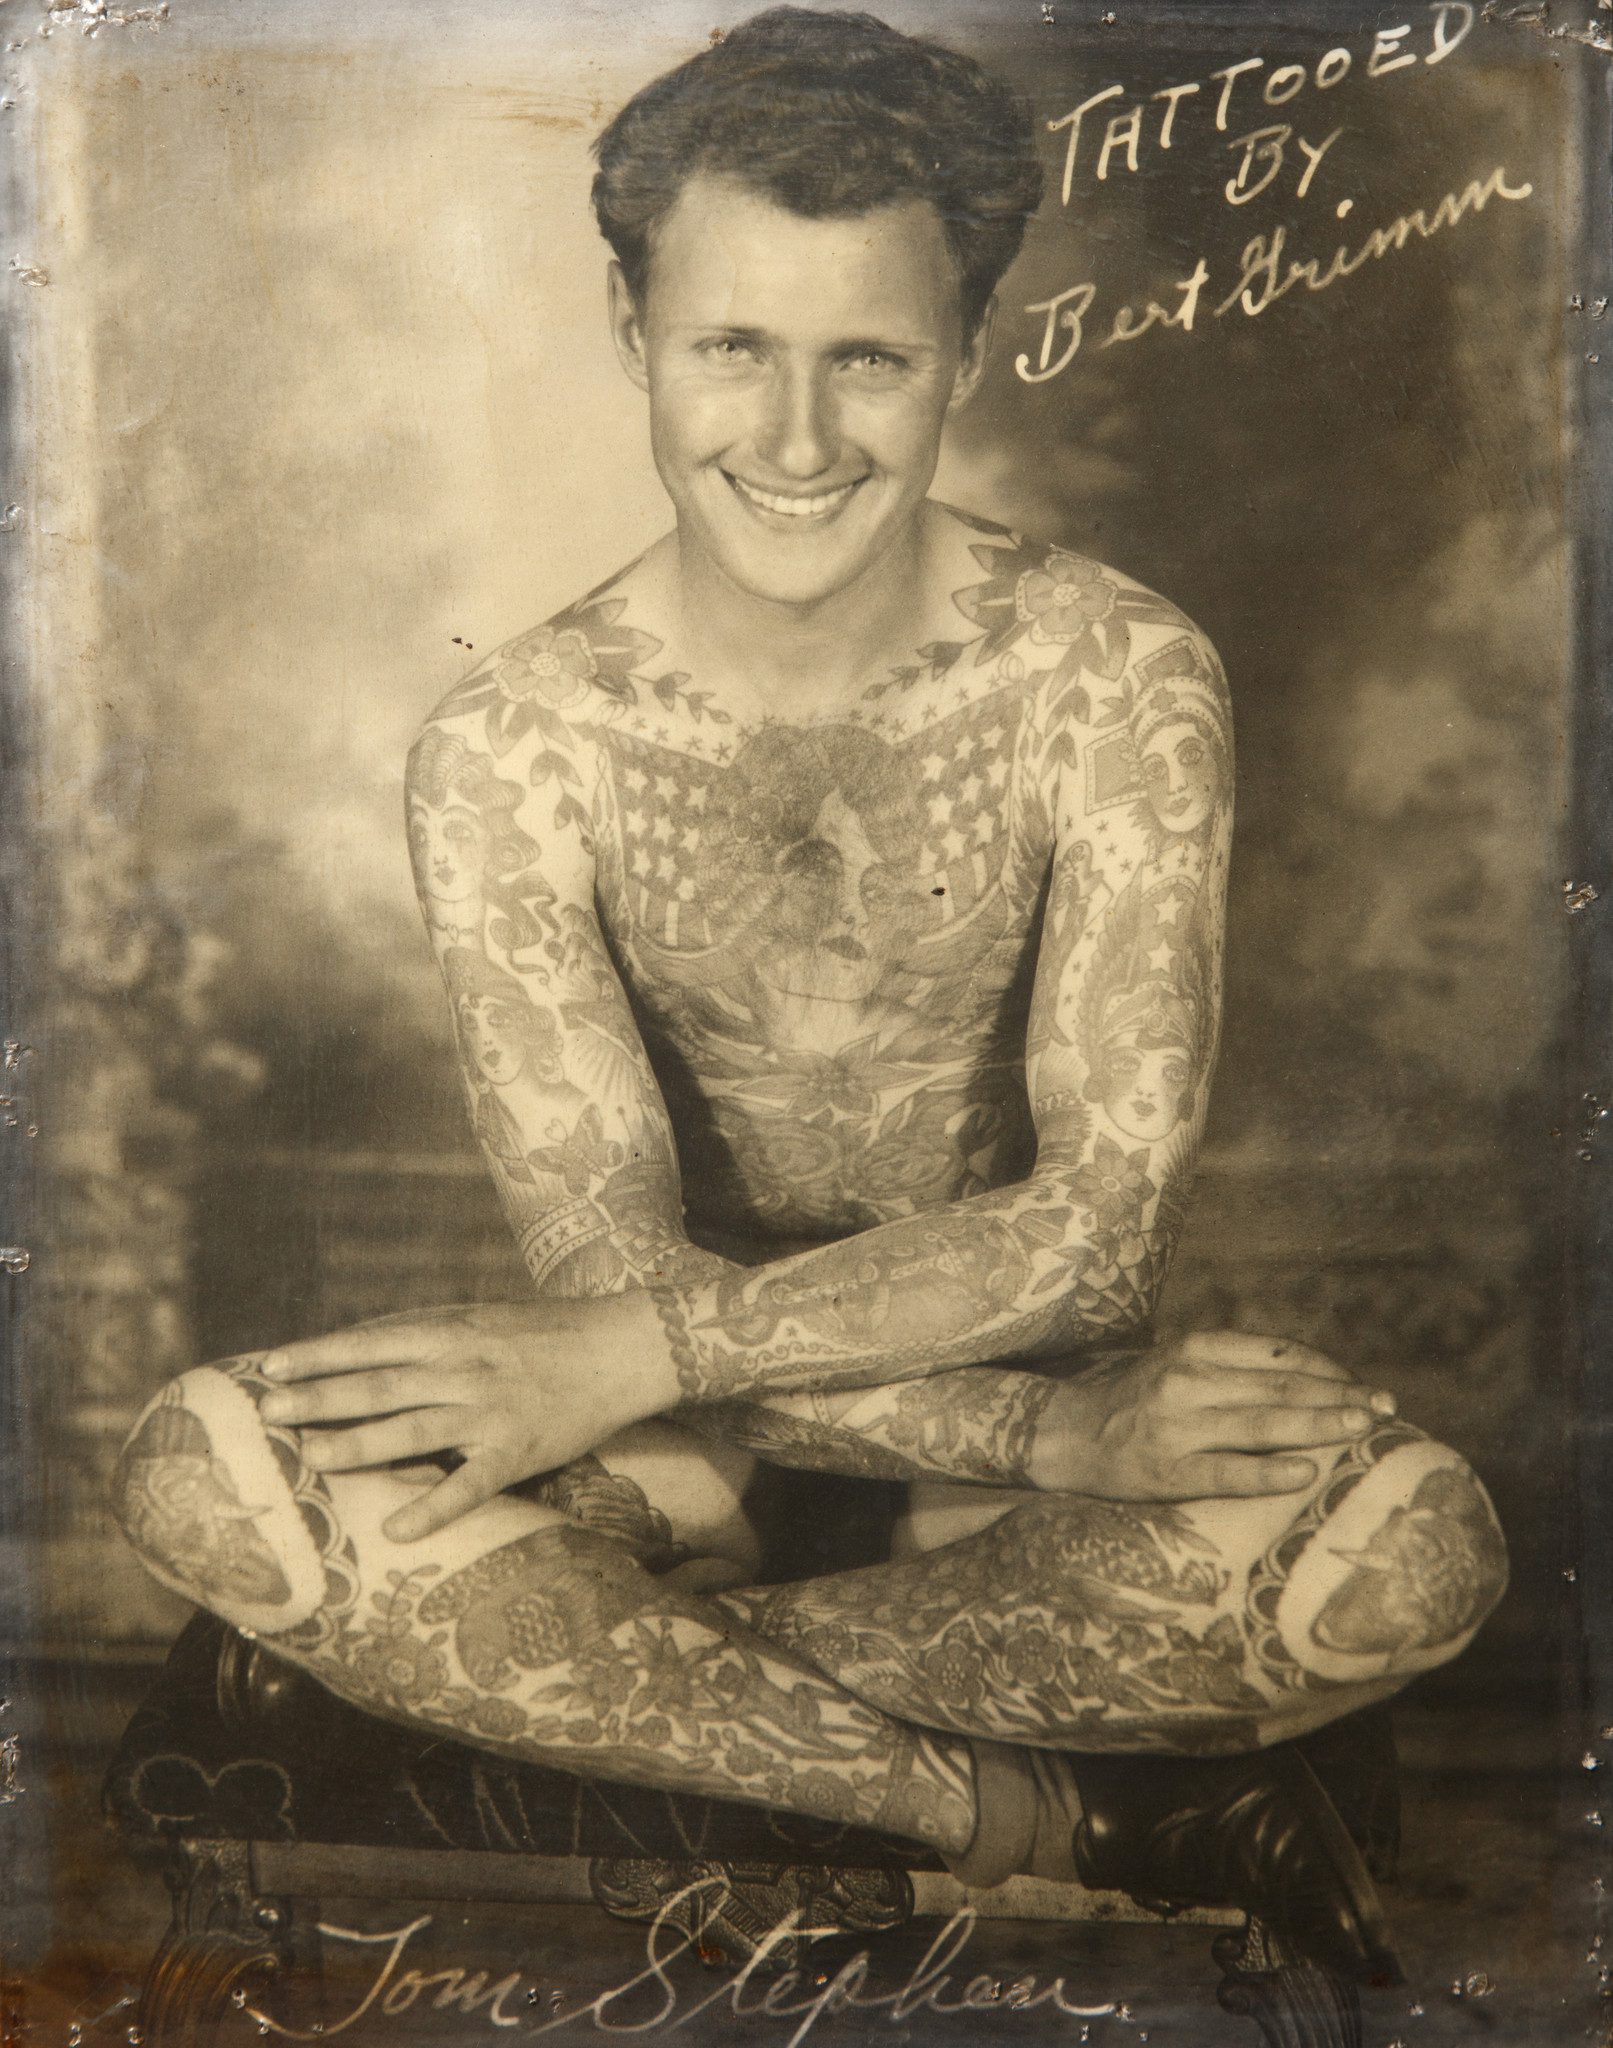 A photograph of a full body tattoo on Tom Stephens featured in the he Natural History Museum of Los